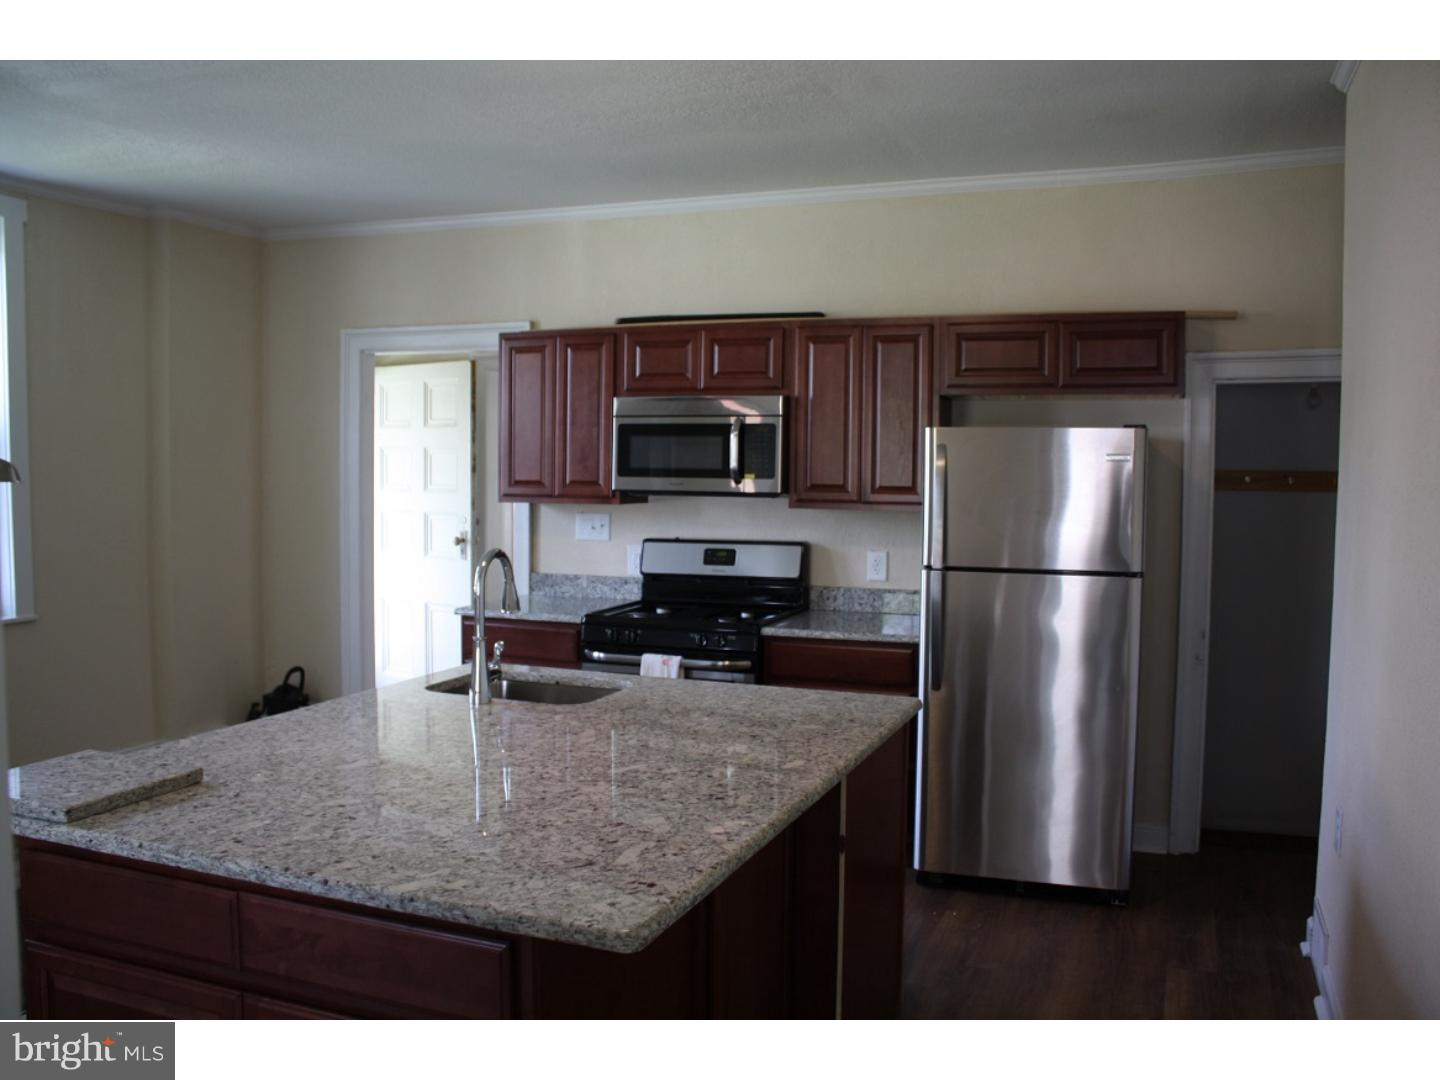 Single Family Home for Sale at 200 WASHINGTON Street Delaware City, Delaware 19706 United States